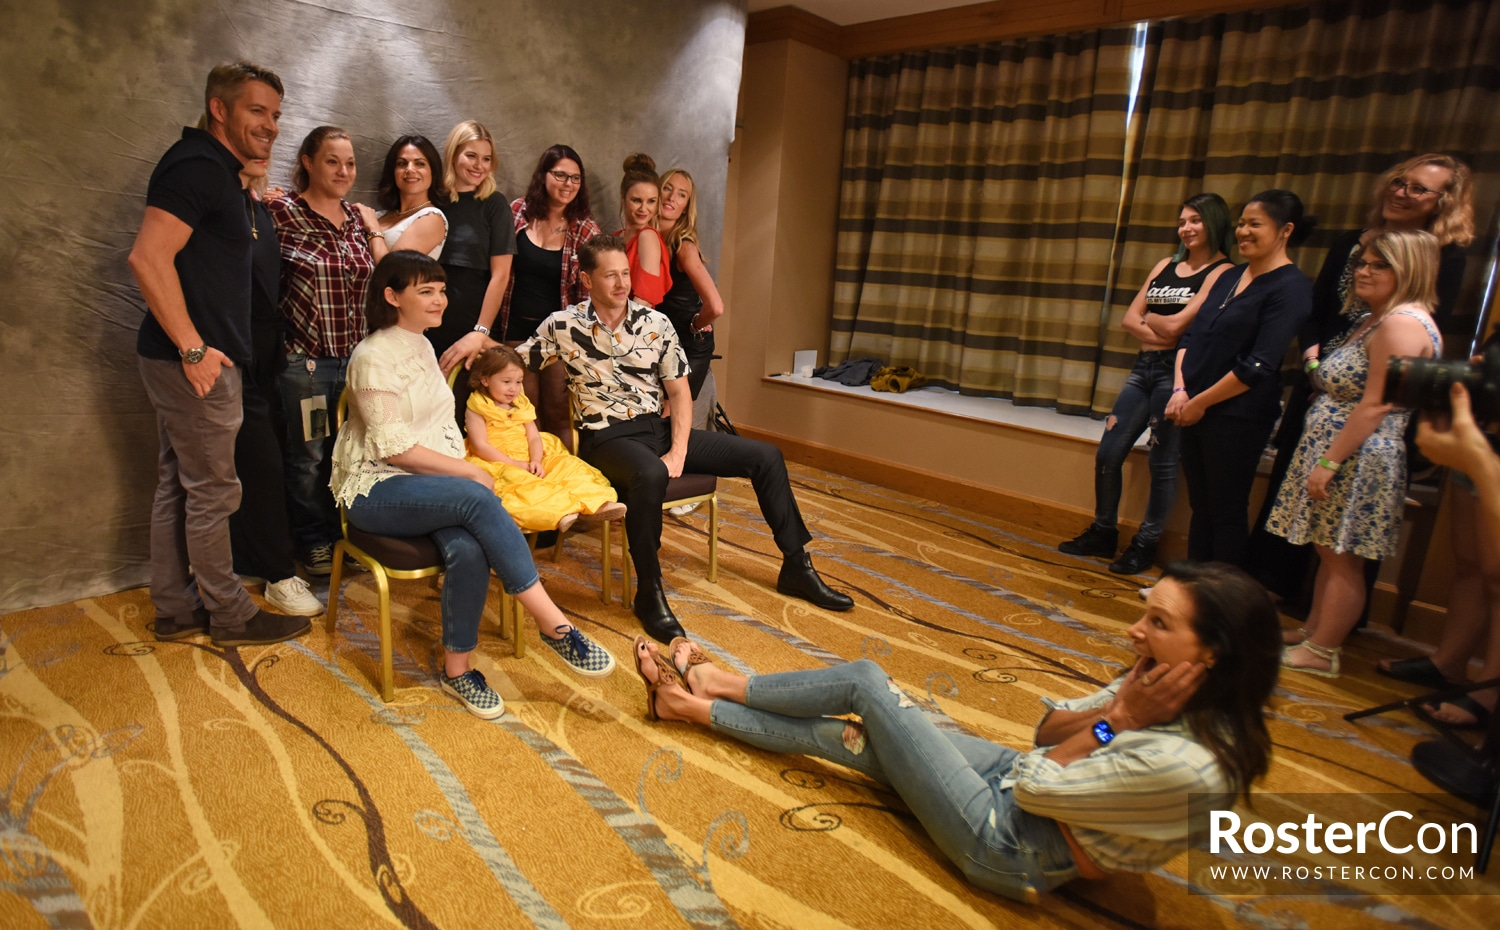 Group Photo - The Happy Ending Convention 3 - Once Upon A Time